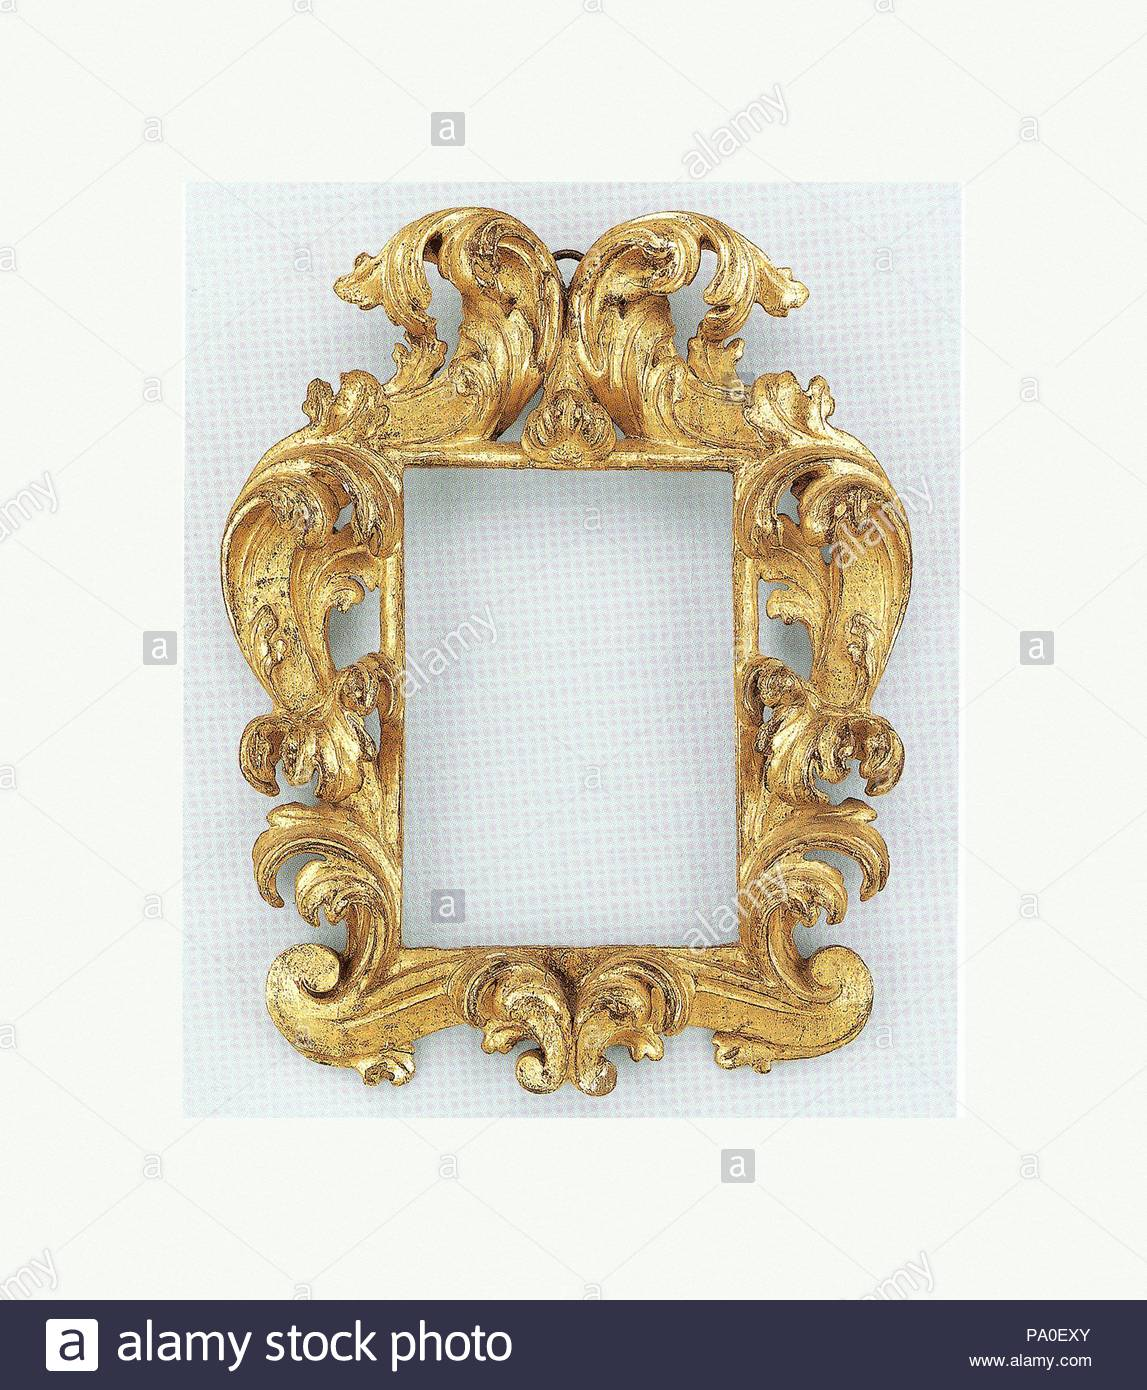 Cauliculi Frame 19th Century Style Early 18th Century Italian